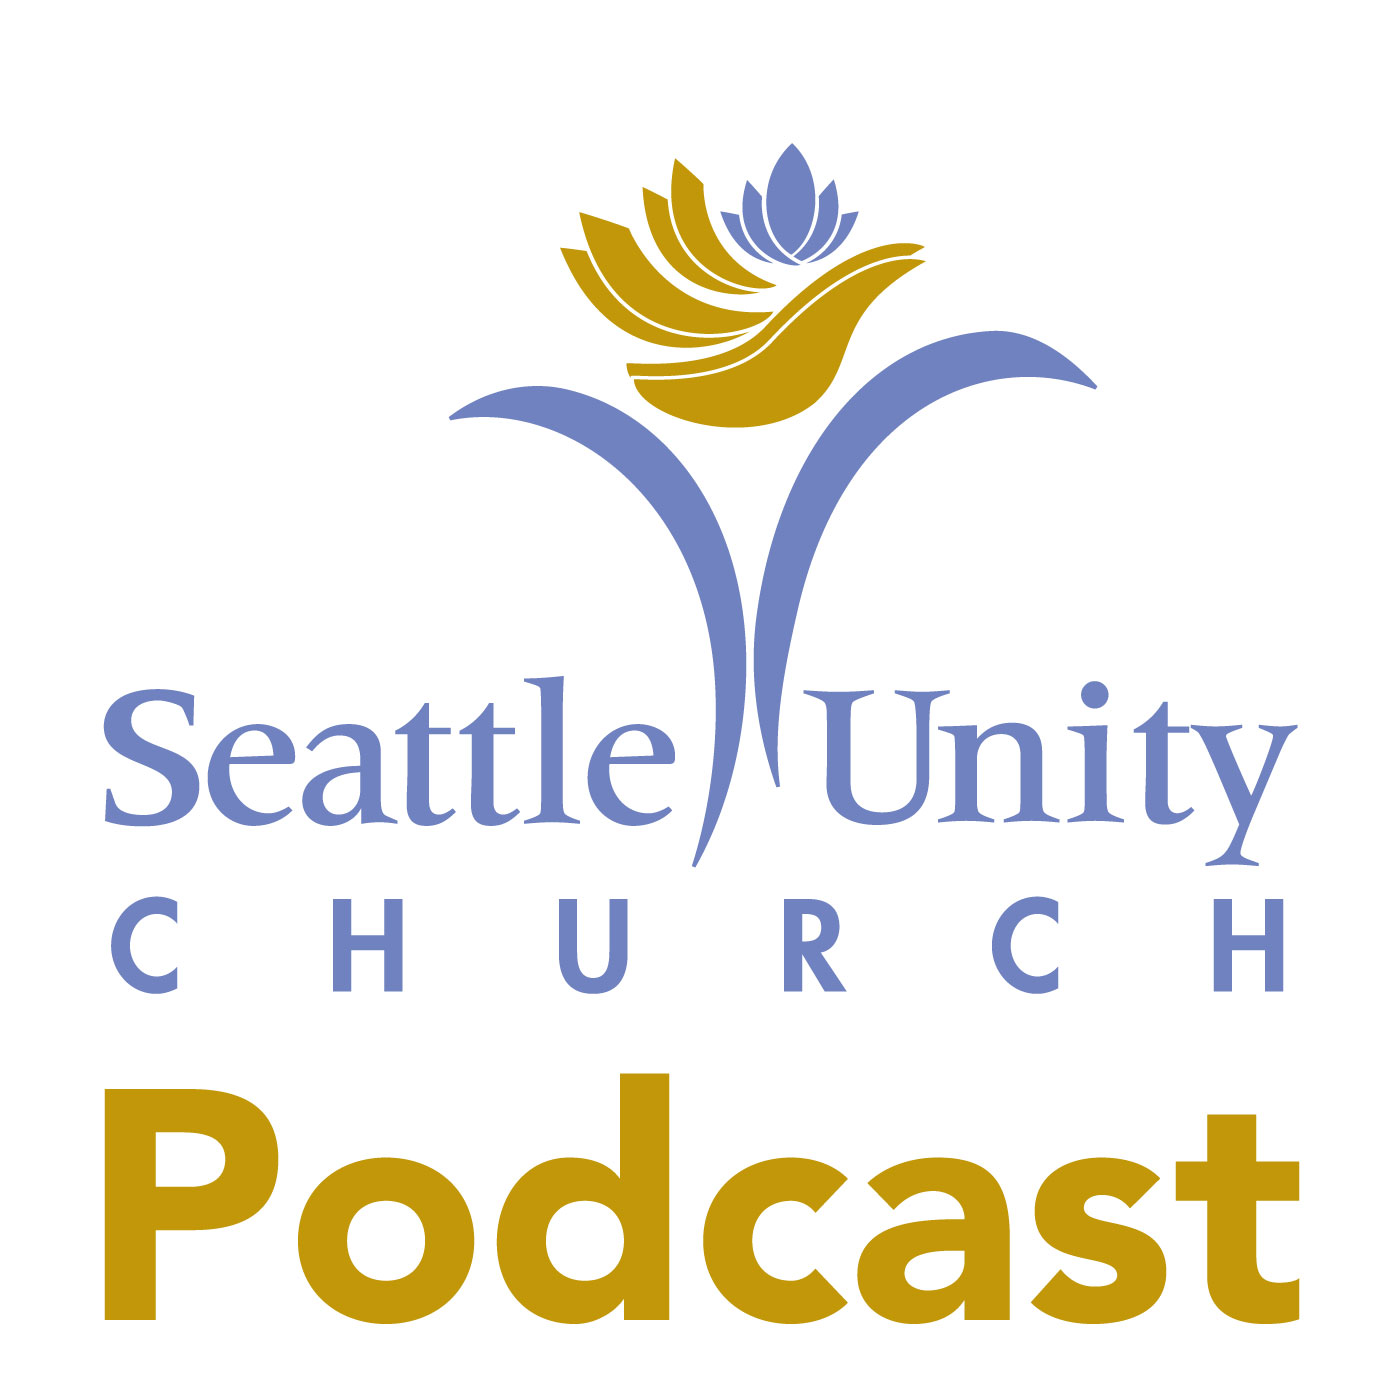 Seattle Unity Church